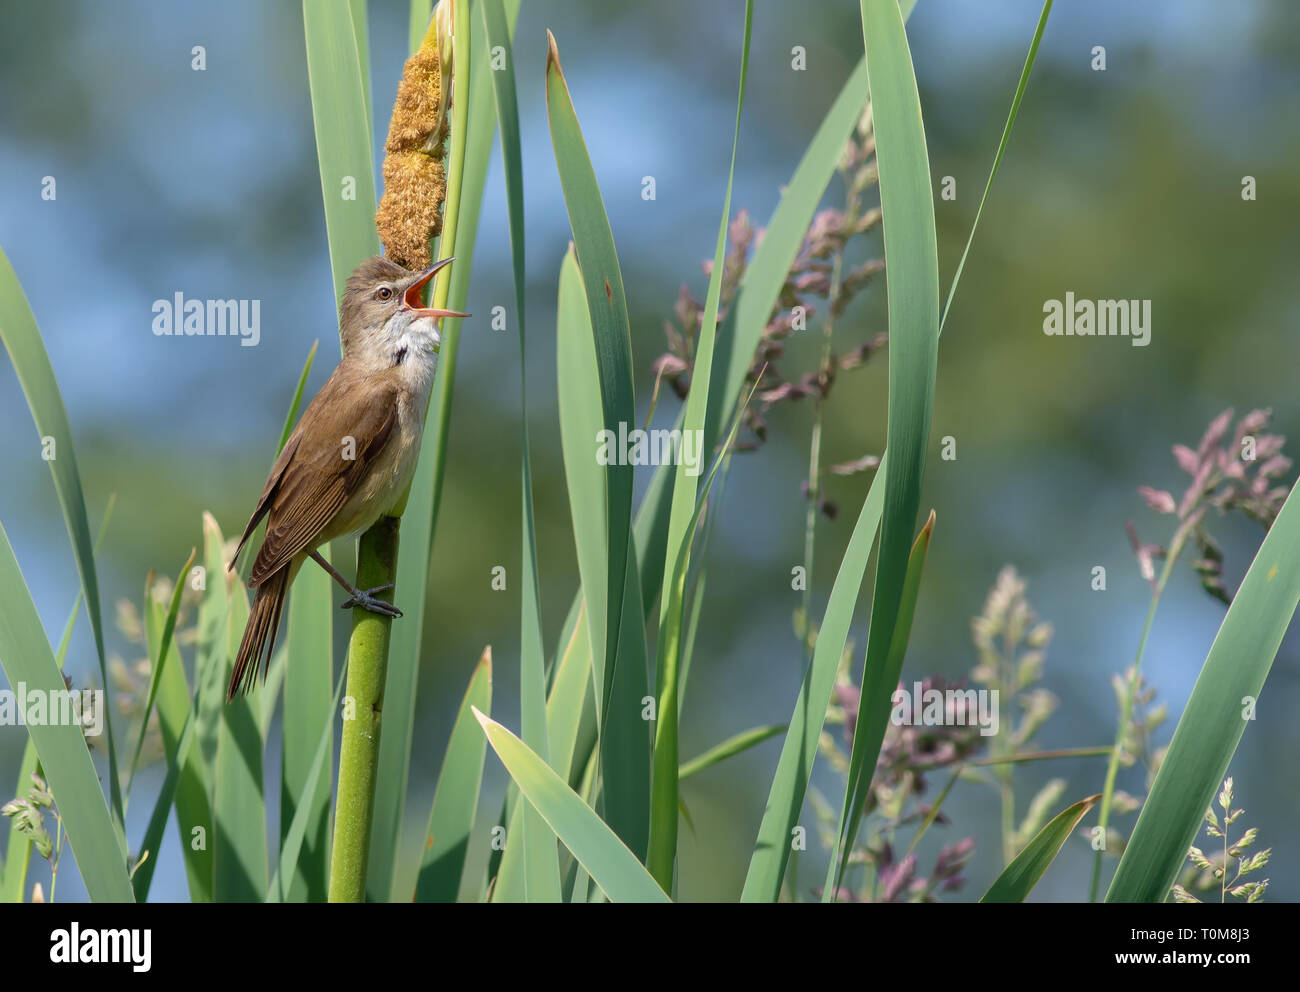 Male Great reed warbler singing at reedmaces - Stock Image